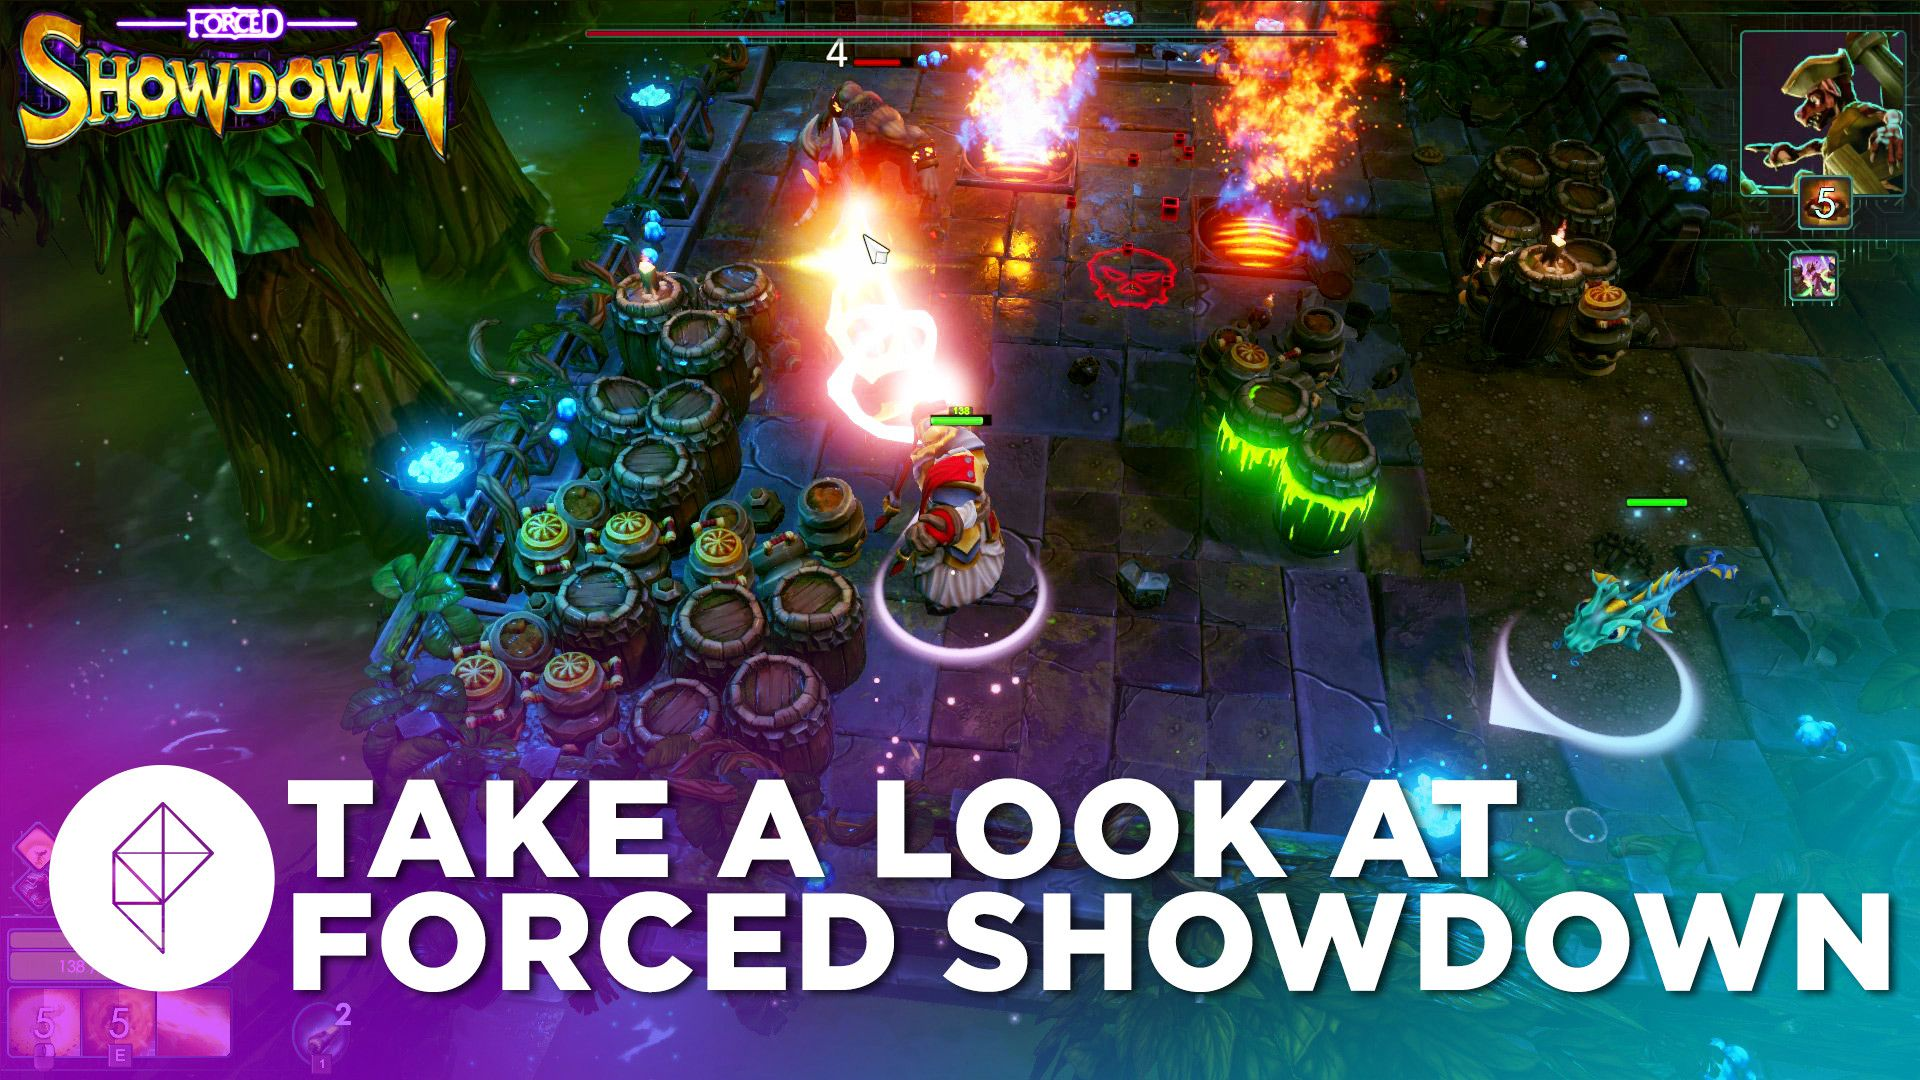 Take a look at twin-stick roguelike shooter Forced Showdown